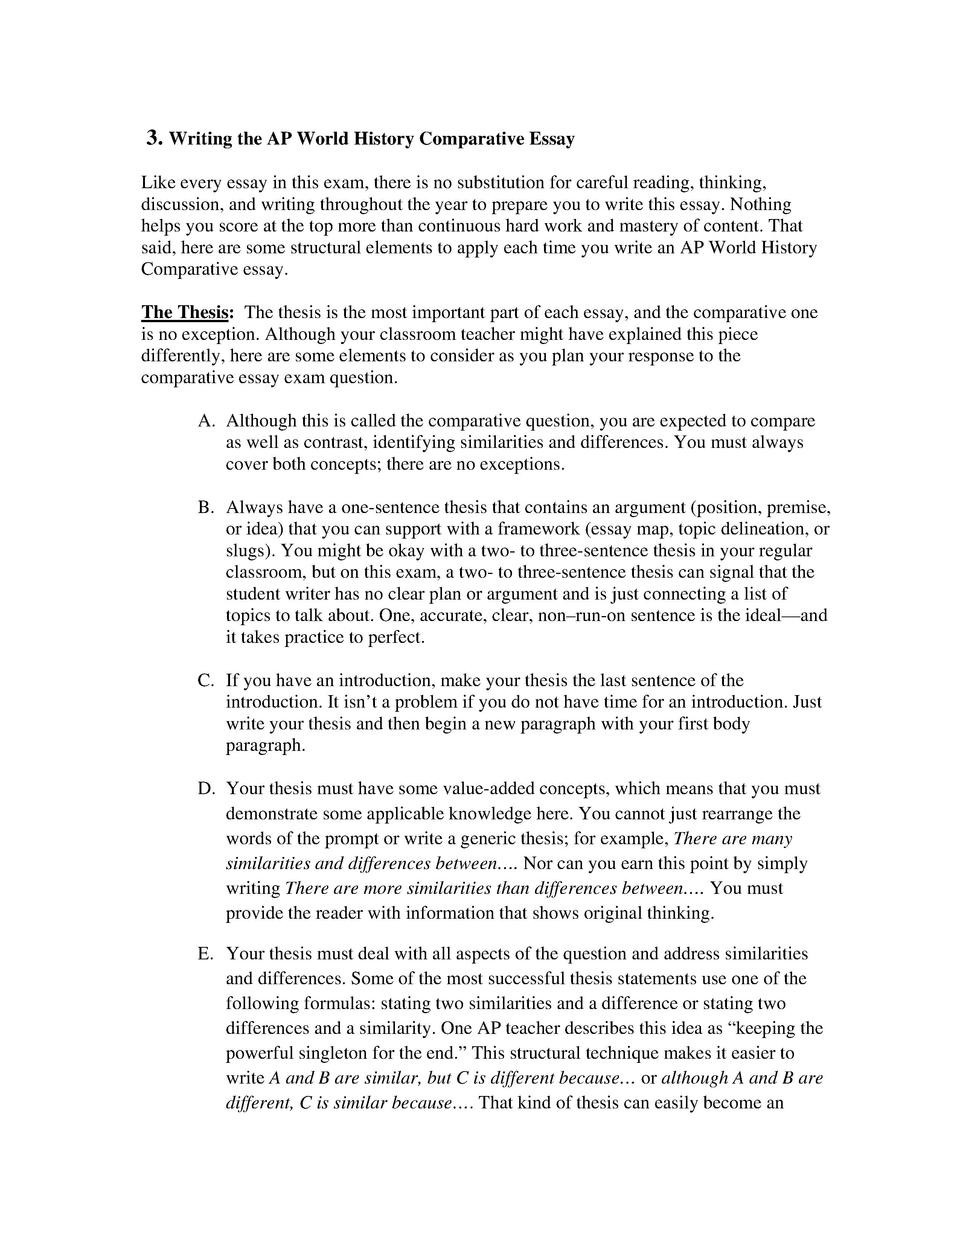 009 Hard Work Essay Writing How To Write College If You Are Boring What Outstanding Example 960